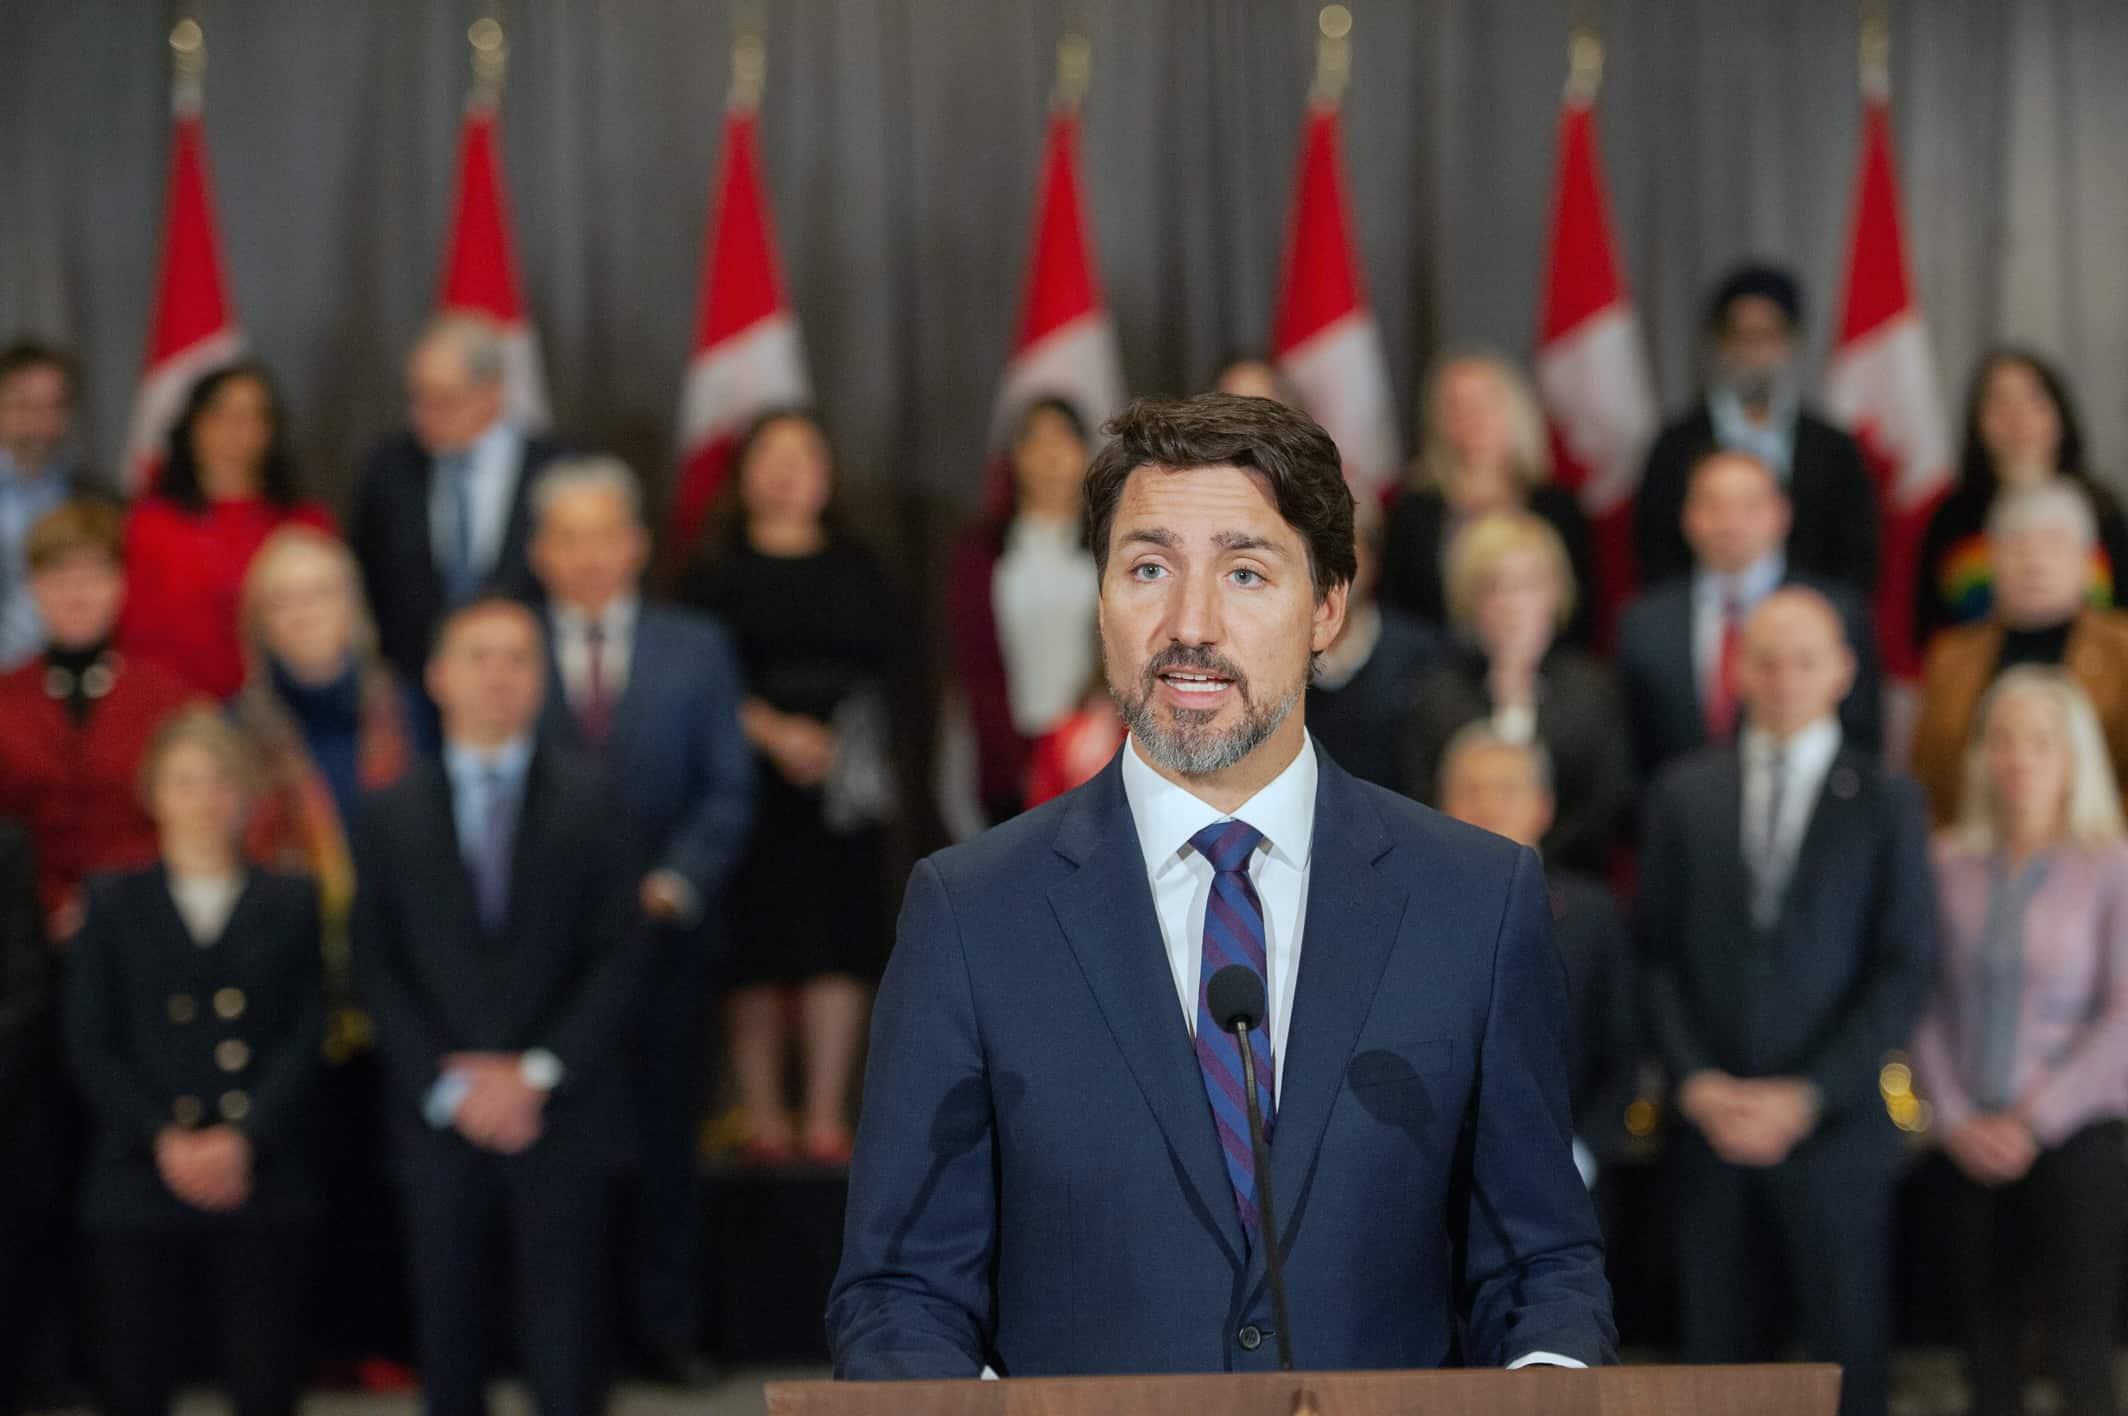 Western Canada-chastened Trudeau softens stance on Manitoba carbon-tax plan